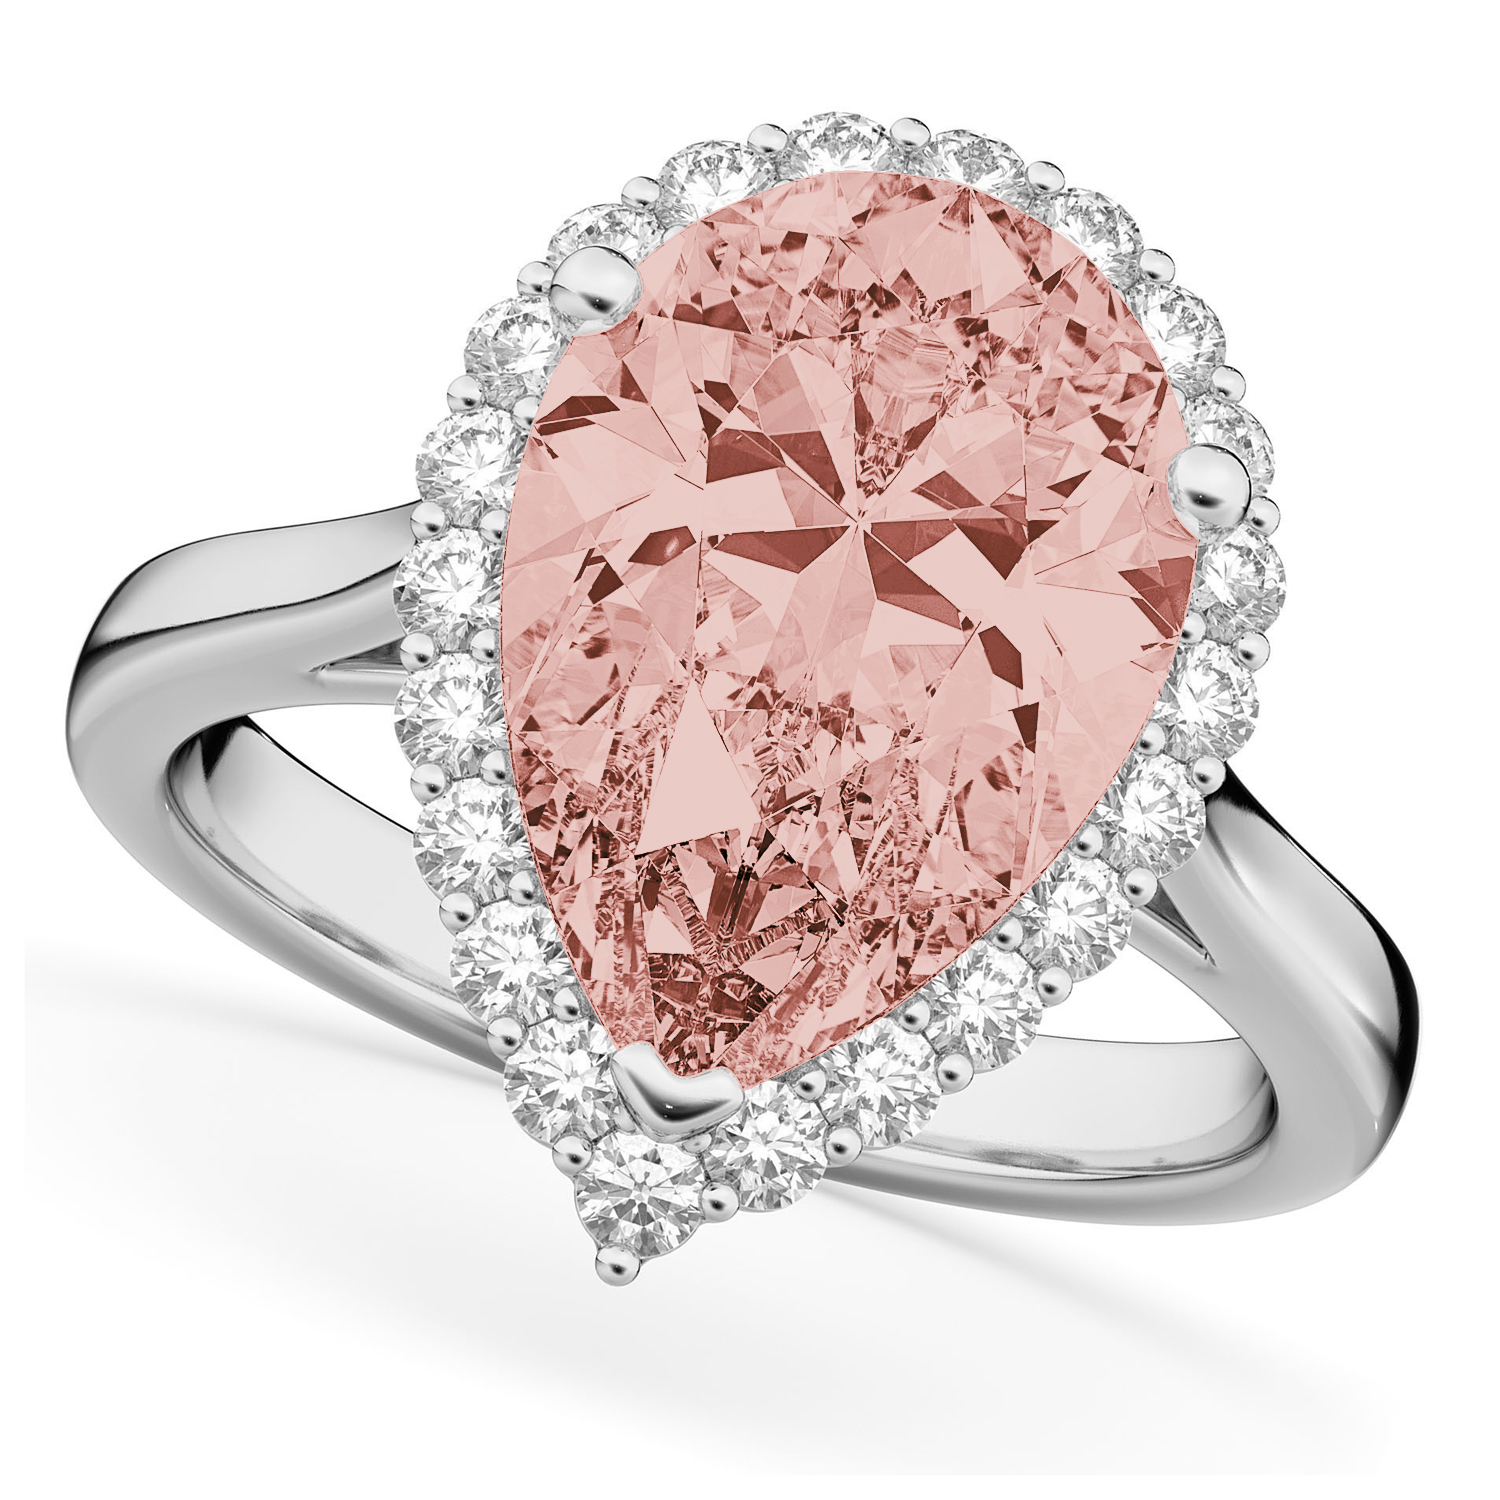 Pear Cut Halo Morganite & Diamond Engagement Ring 14K White Gold 4.74ct